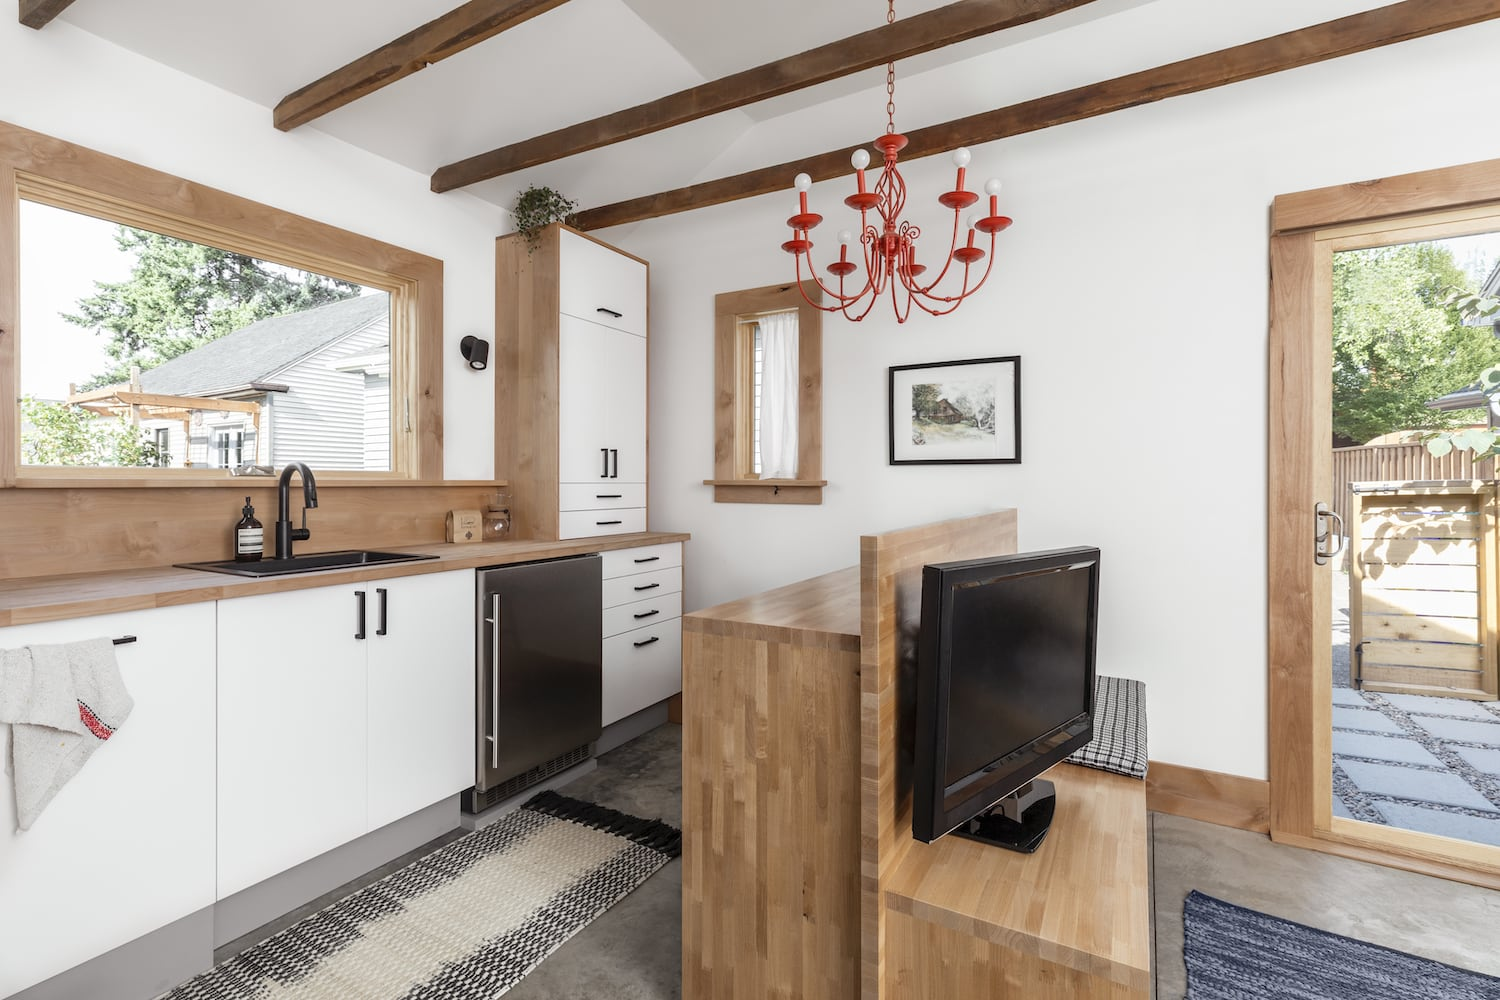 ADU kitchenette with wood peninsula, concrete floors and exposed wood beams